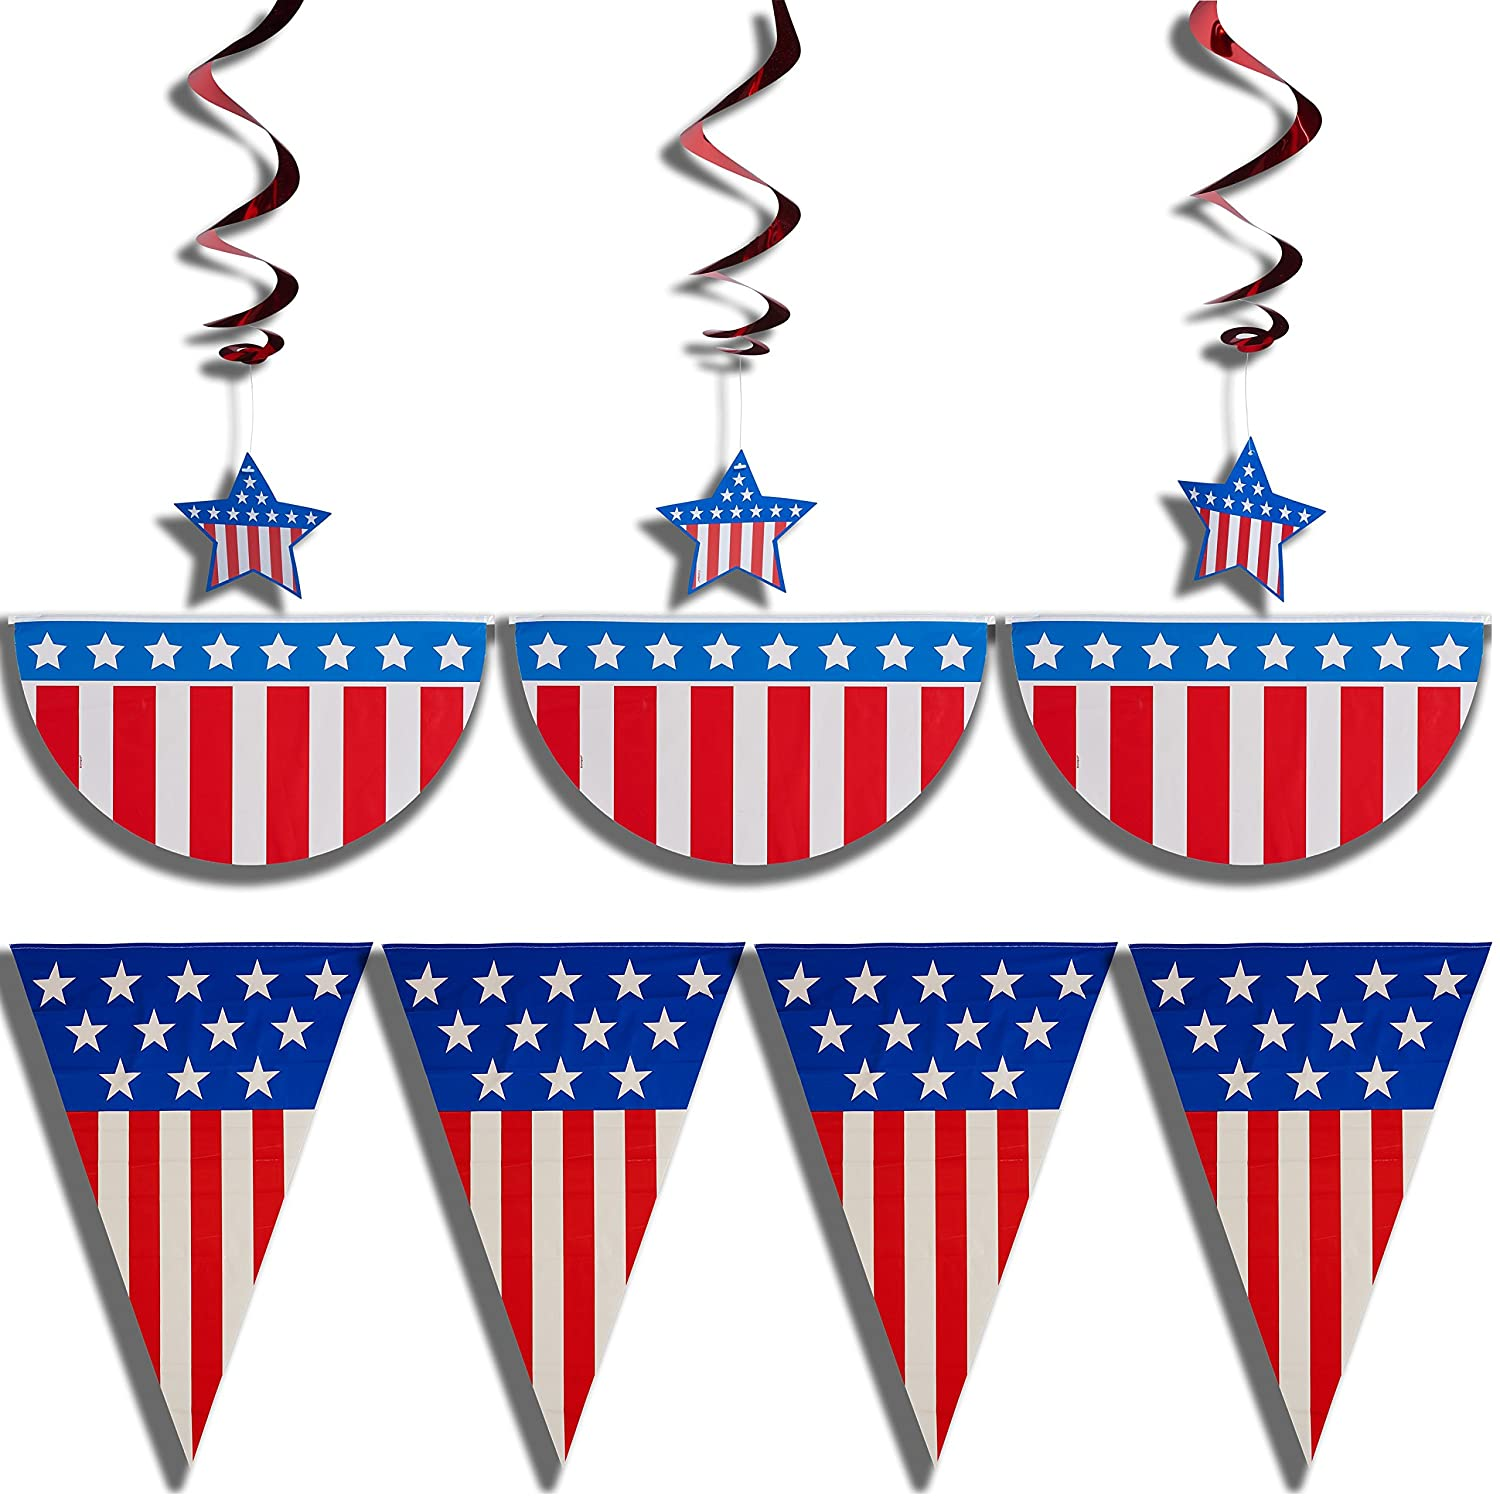 Patriotic Decorations Part - 40: Amazon.com: Prextex 4th Of July Patriotic Decorations Party Pack Bundle  With 12-Feet American Flag Bunting, 3 Stars And Stripes Hanging Swirls, ...